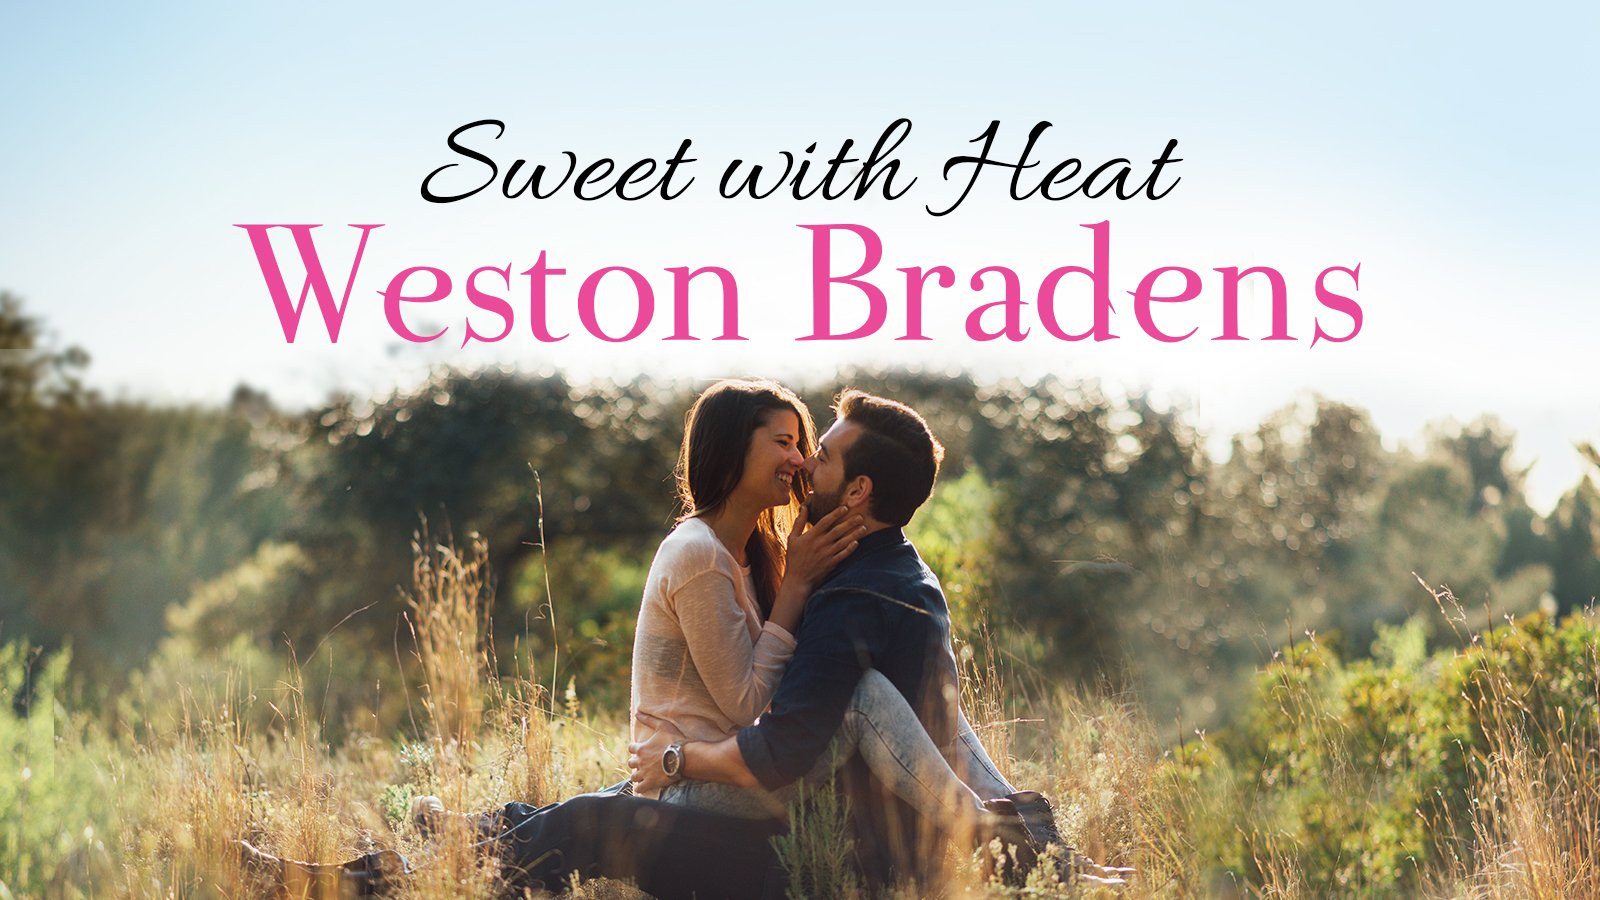 Sweet with Heat Weston Bradens, Addison Cole